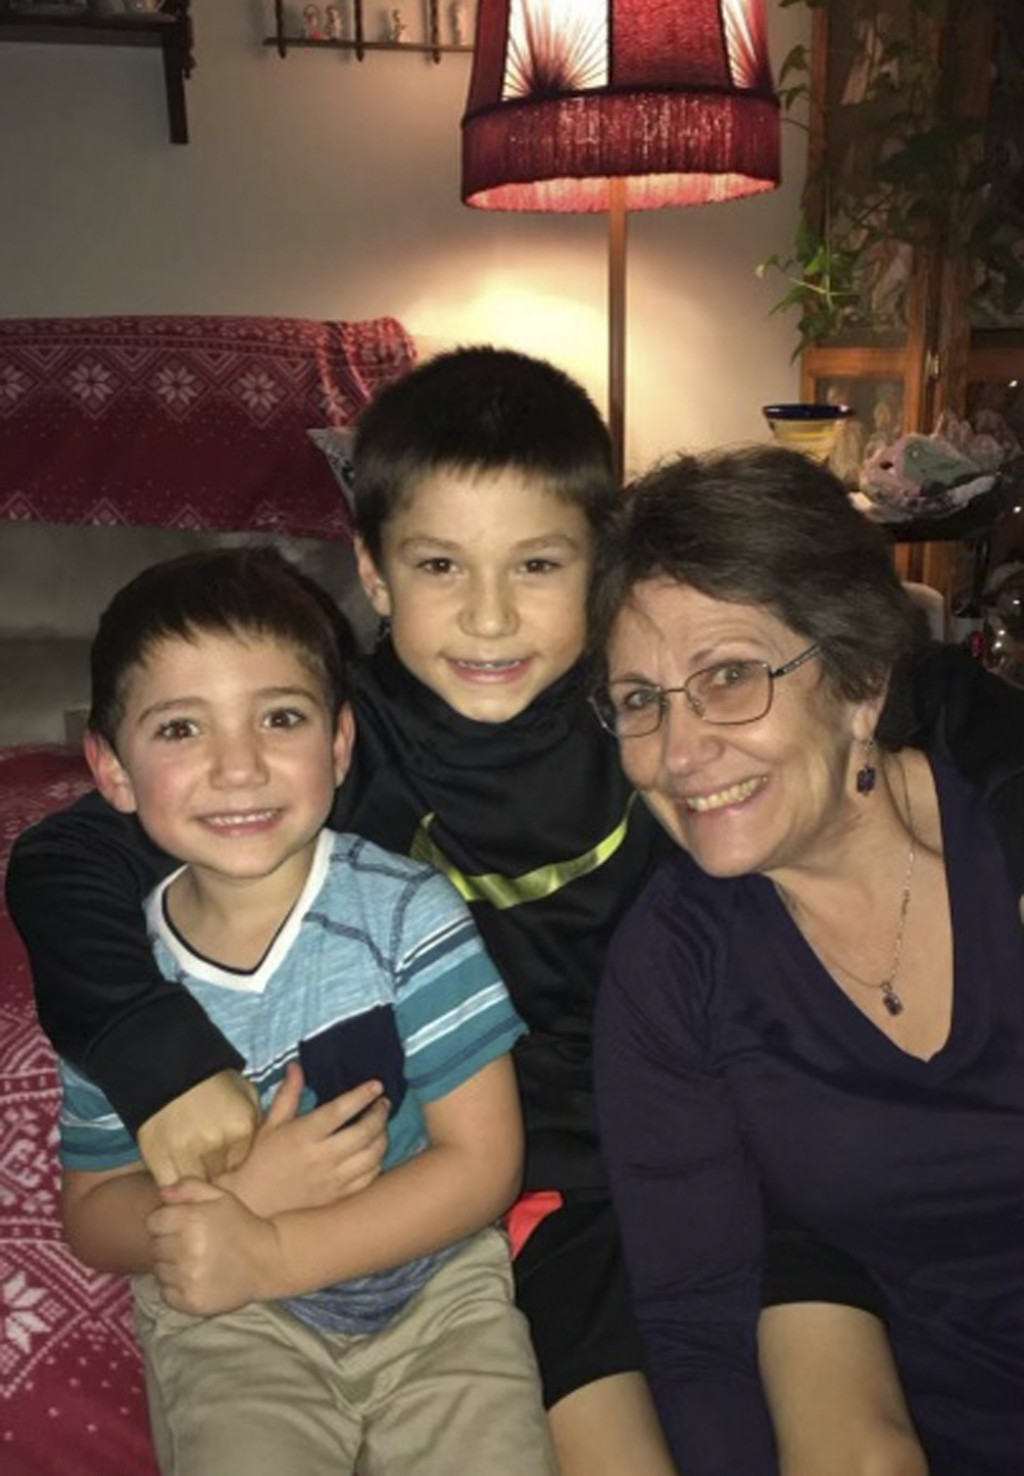 In this December 2019 photo, provided by Barbara Trout, she poses with grandsons Grayson, center, and Garrett, left, in Keizer, Ore. Trout, who suffer...